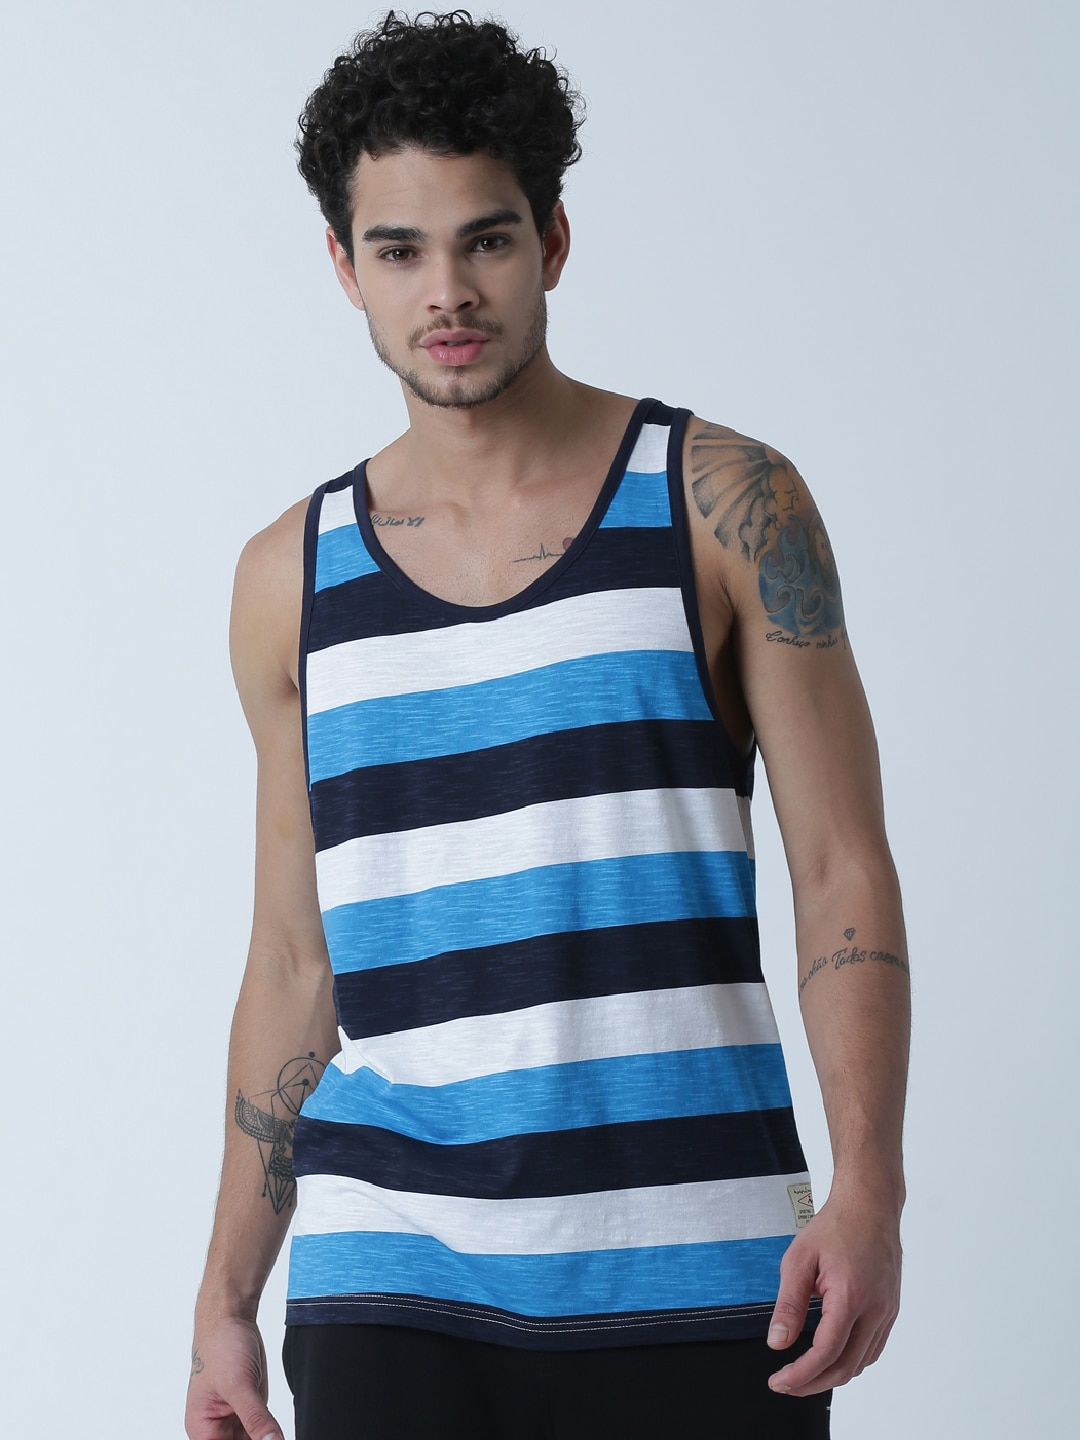 Masculino Latino White Striped T-shirt MLF4034-A image